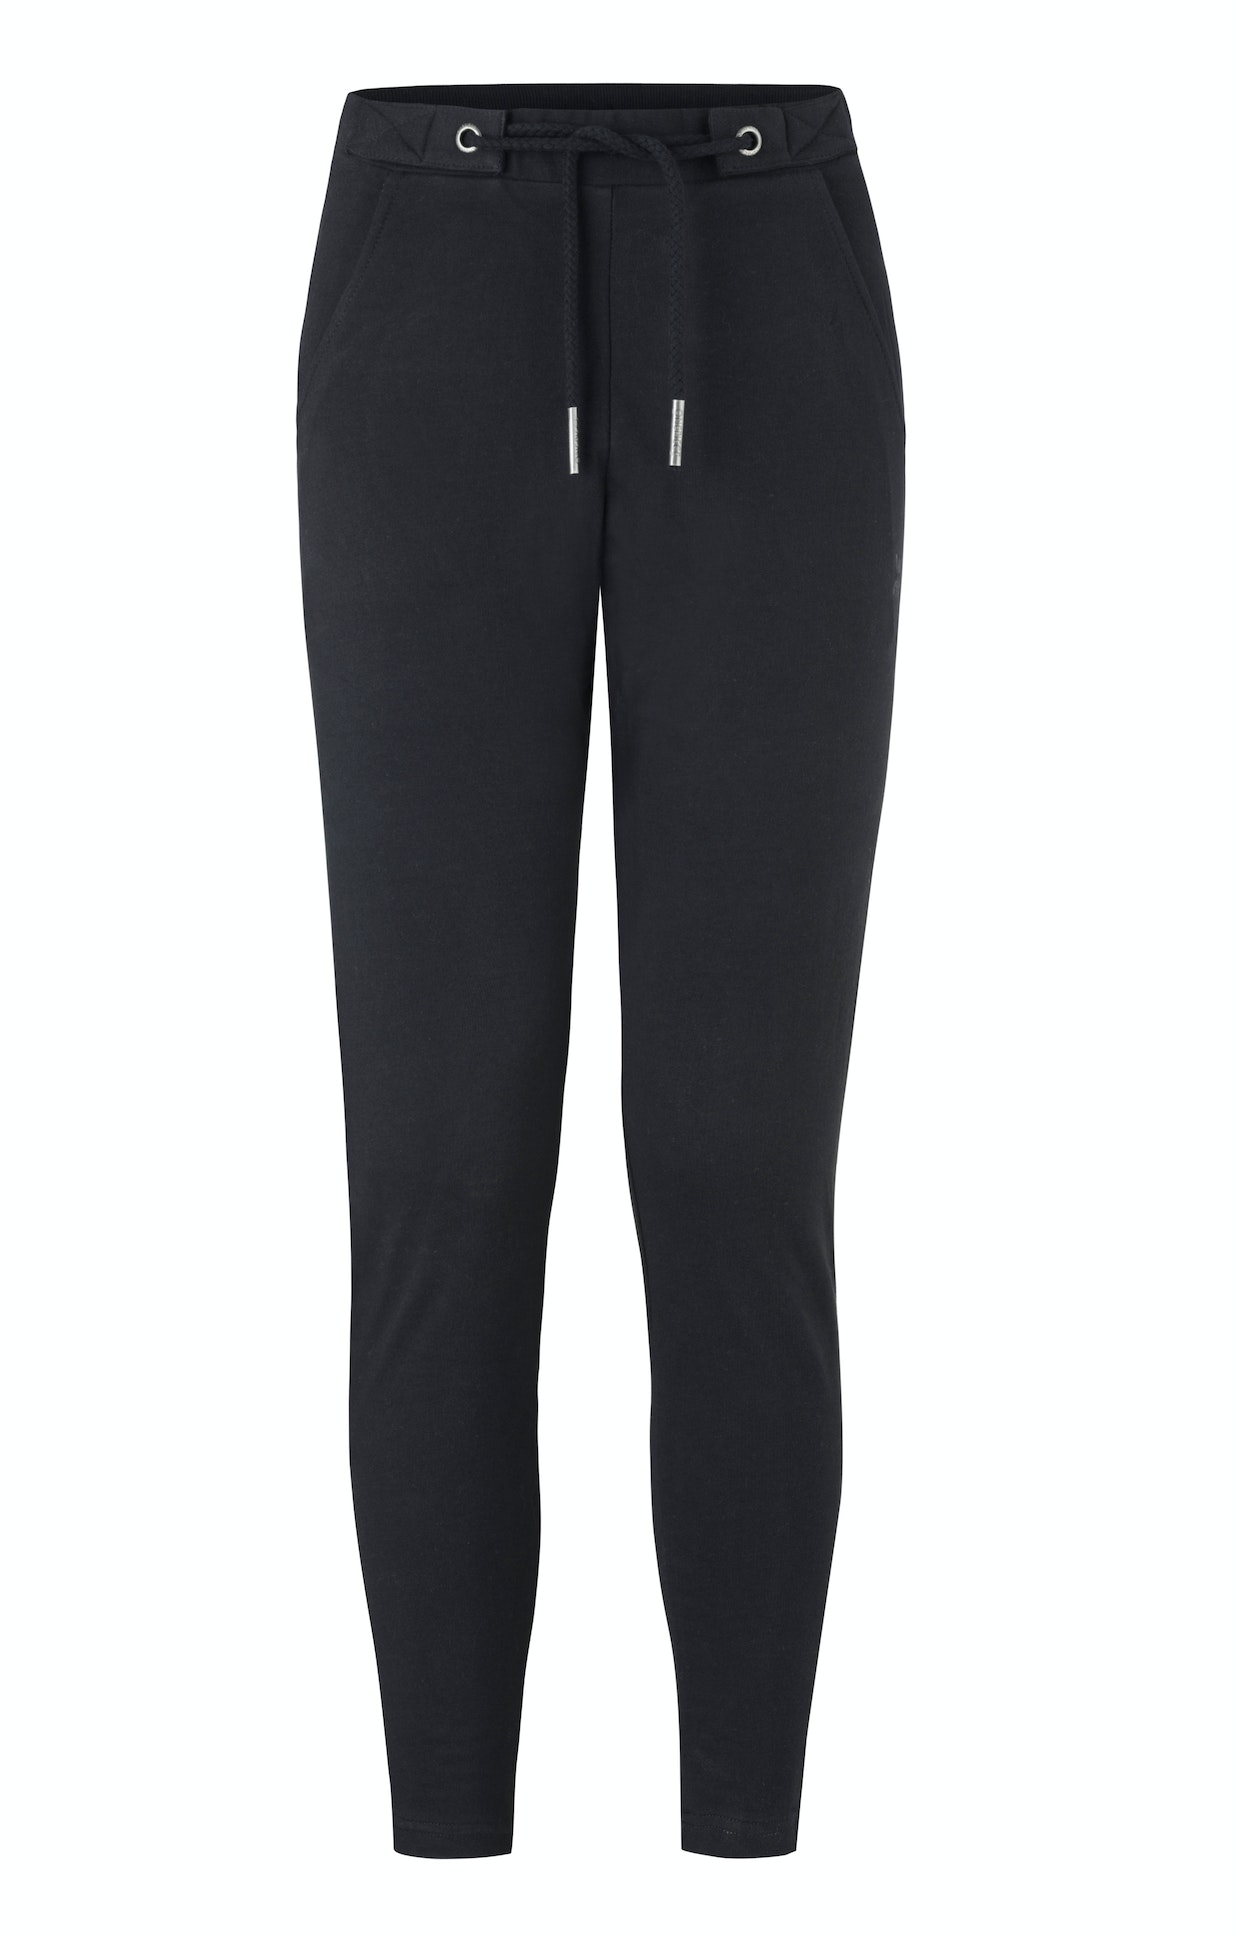 Whatever Pants Black Black drop crotch womens jogger pant with loose fit in premium soft cotton.